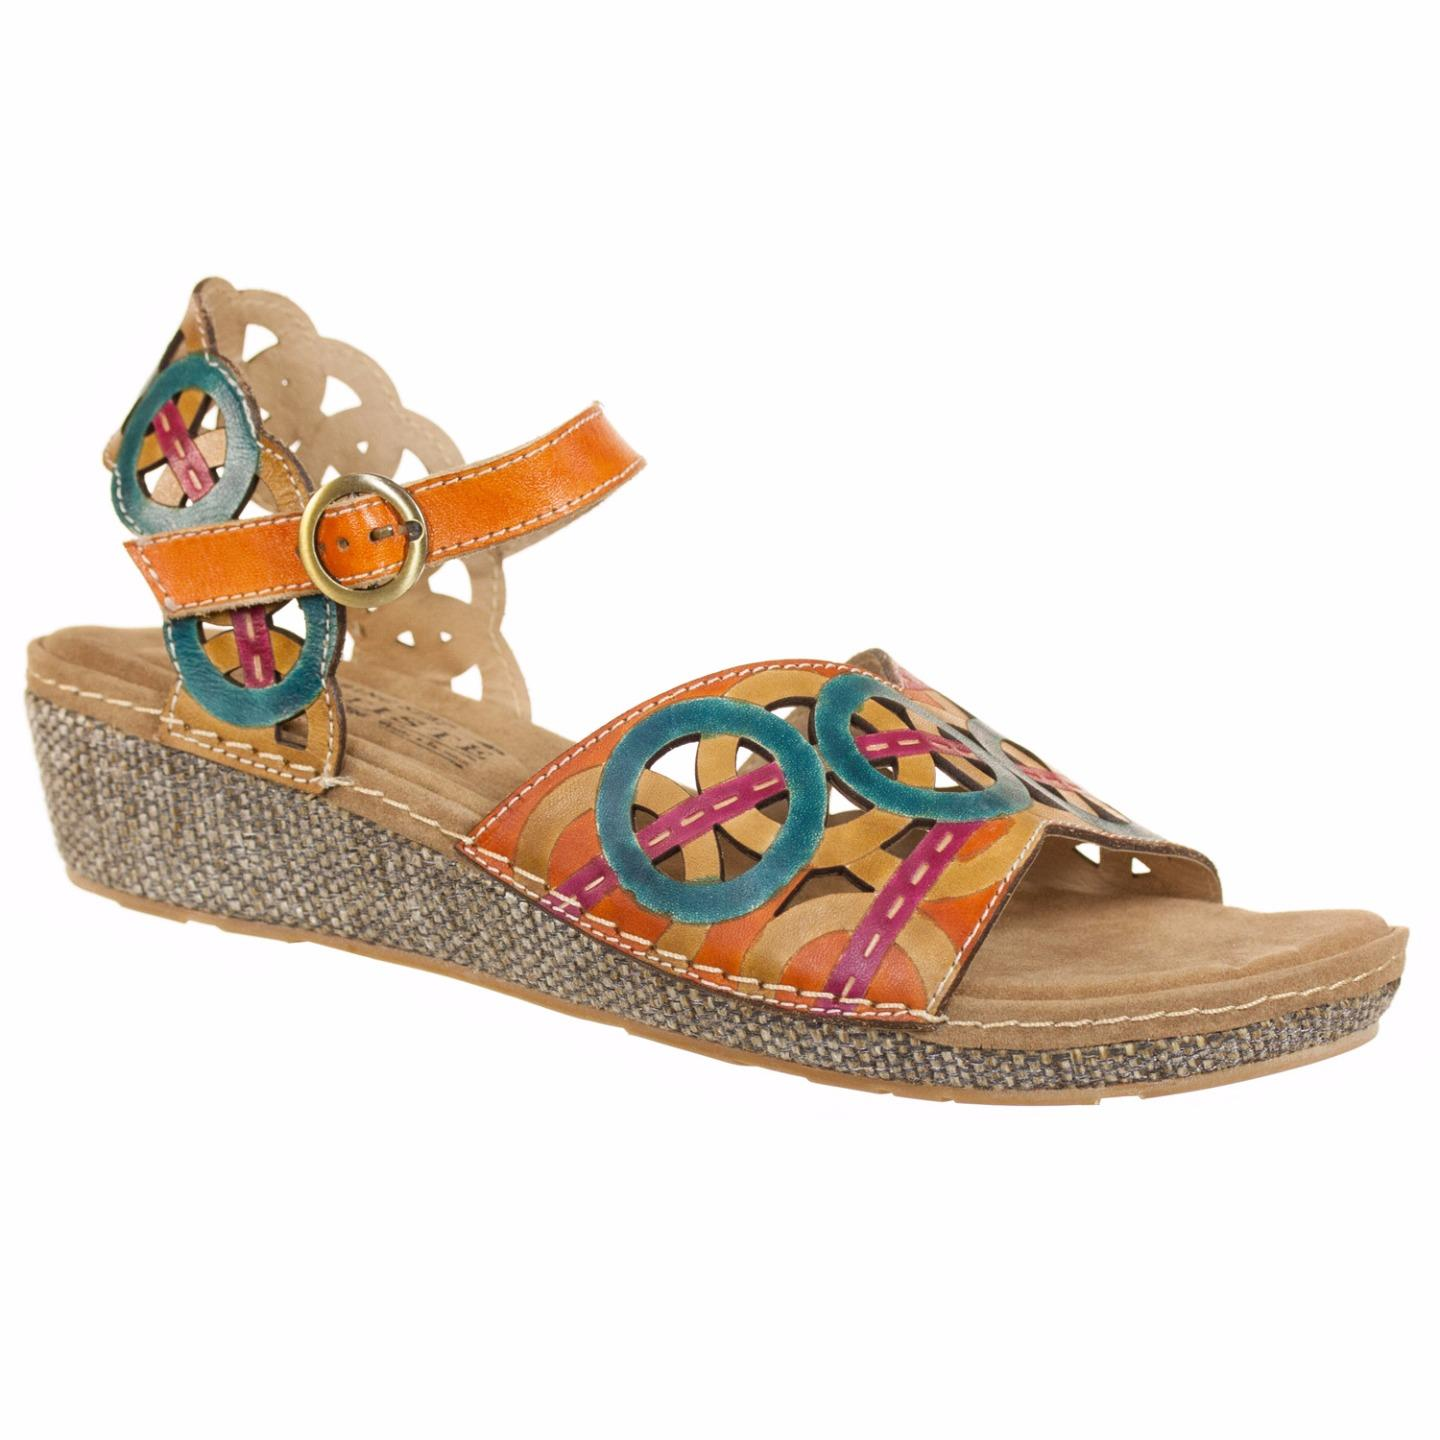 L'Artiste Collection By Spring Step Women's Athens Sandal Teal Camel EU 37 US 7 by Spring Step